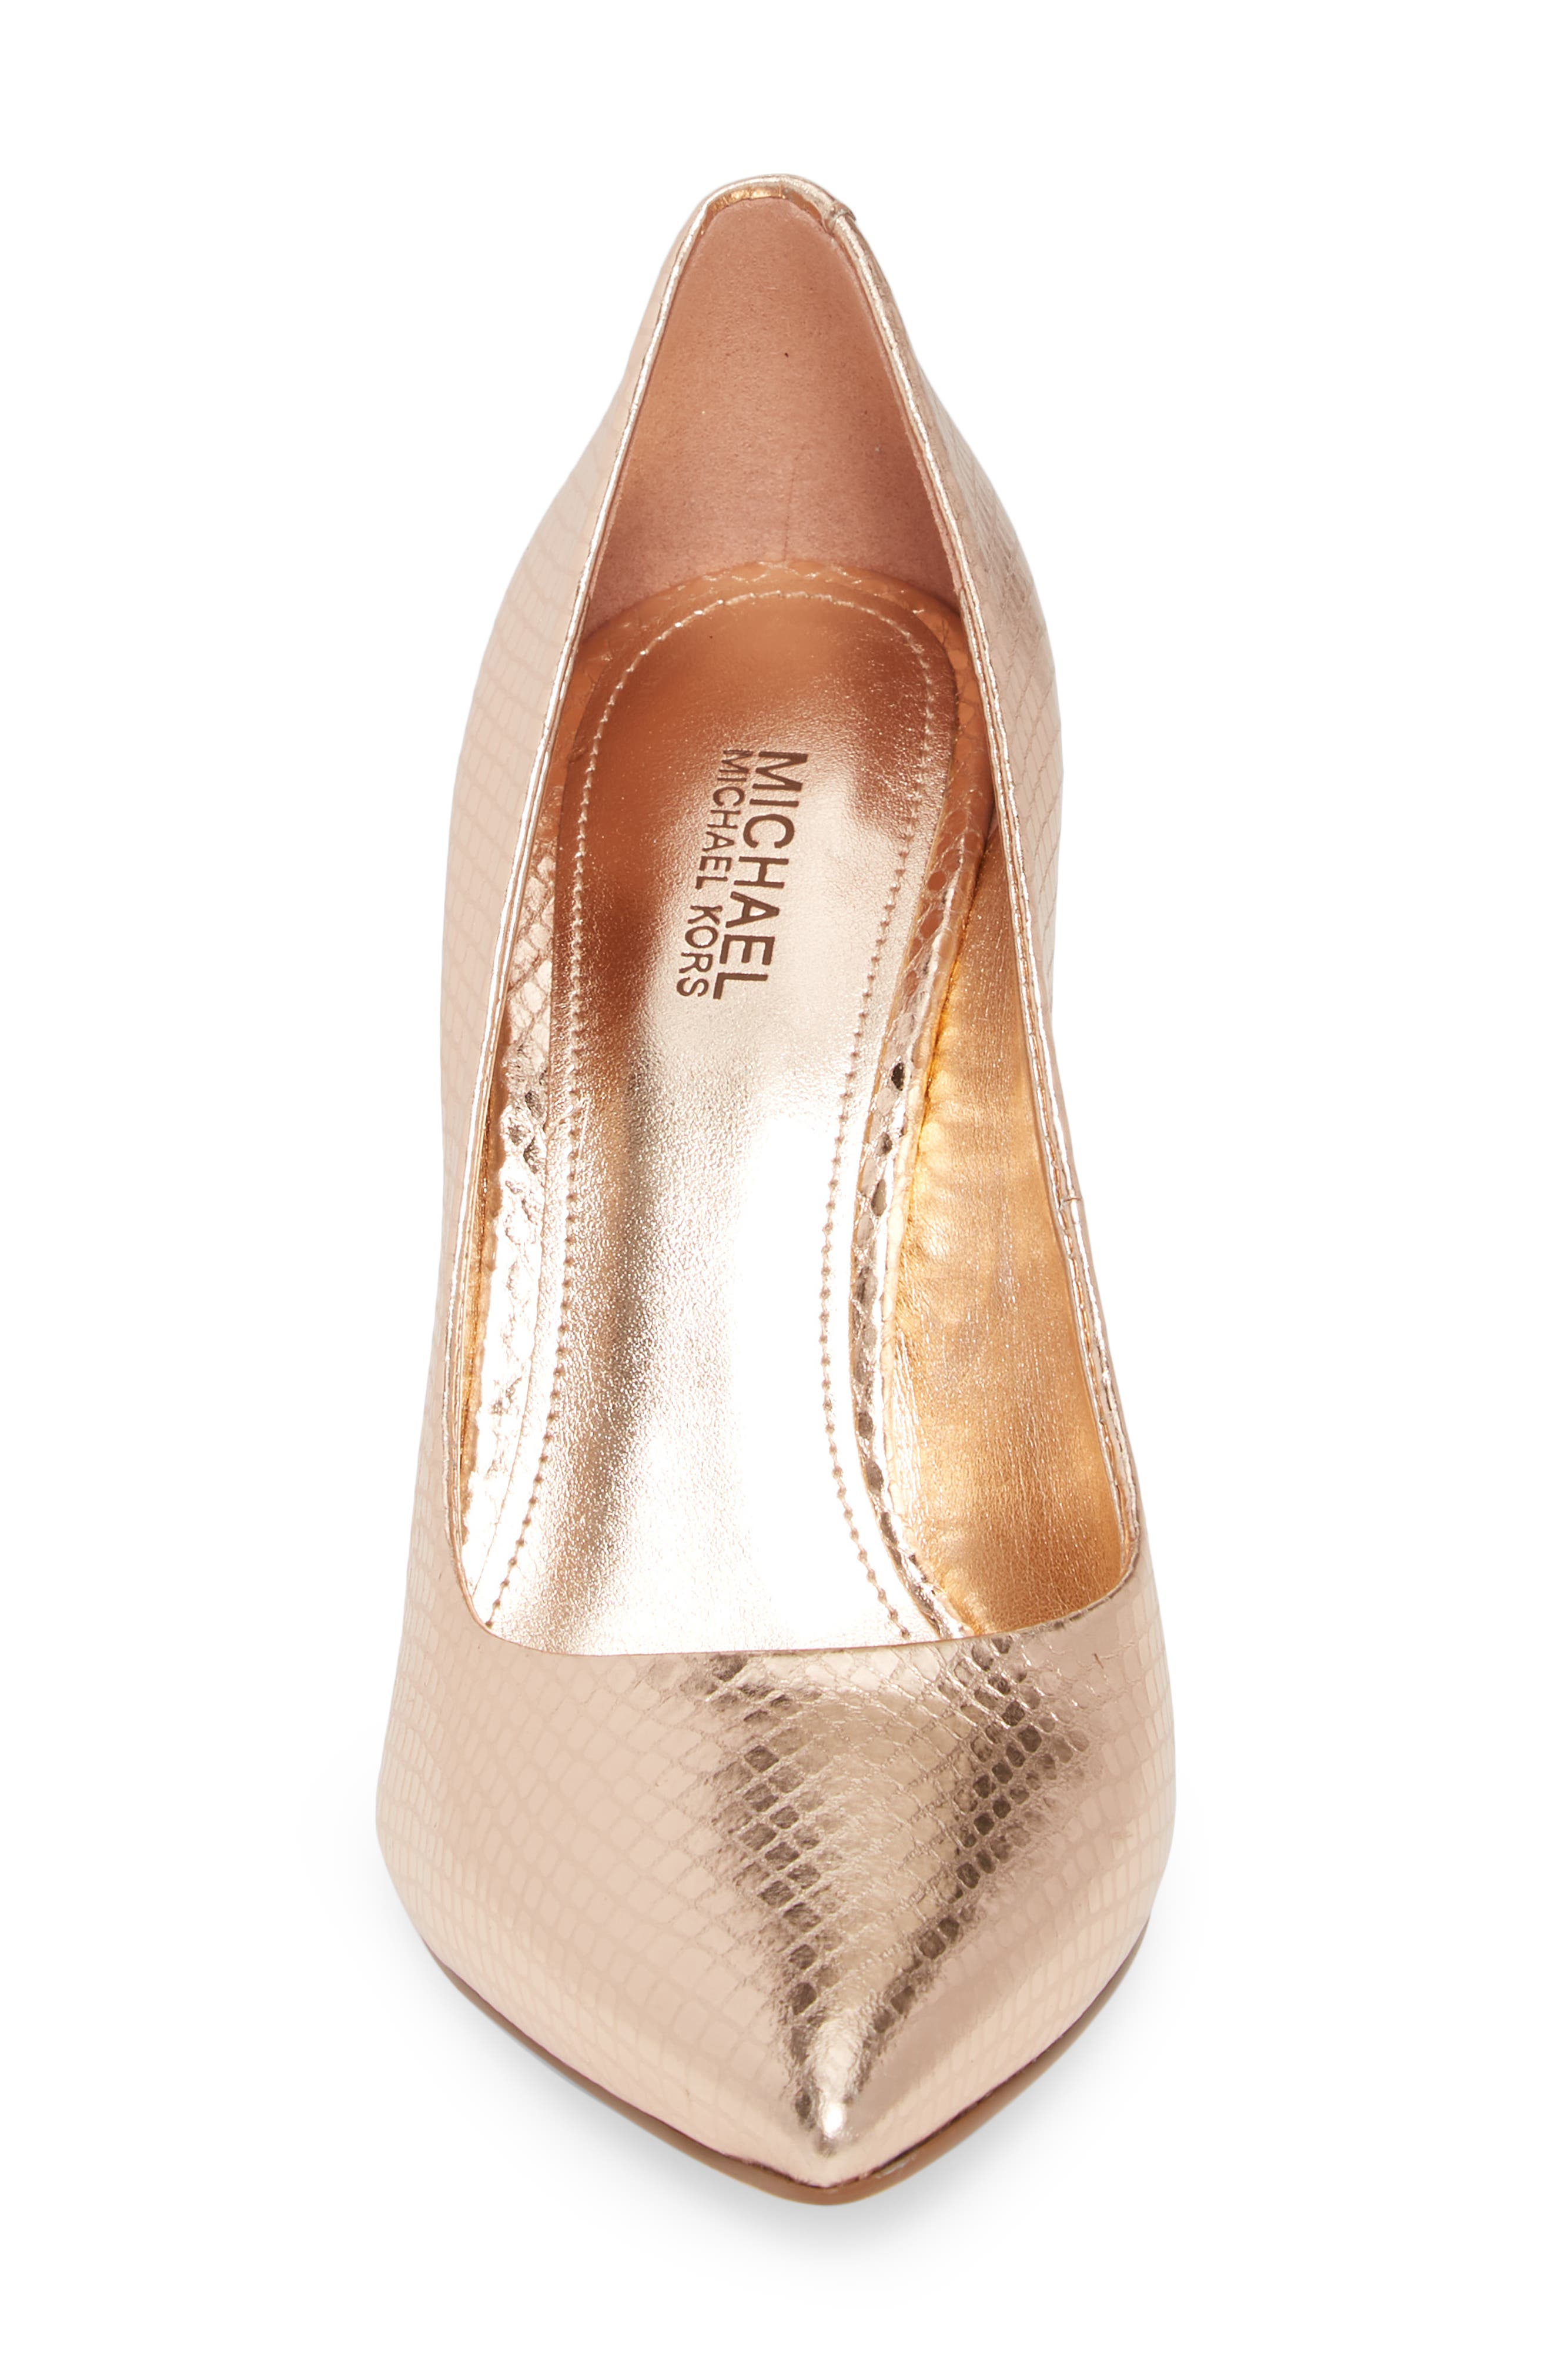 Claire Pointy Toe Pump,                             Alternate thumbnail 6, color,                             Soft Pink Snake Print Fabric